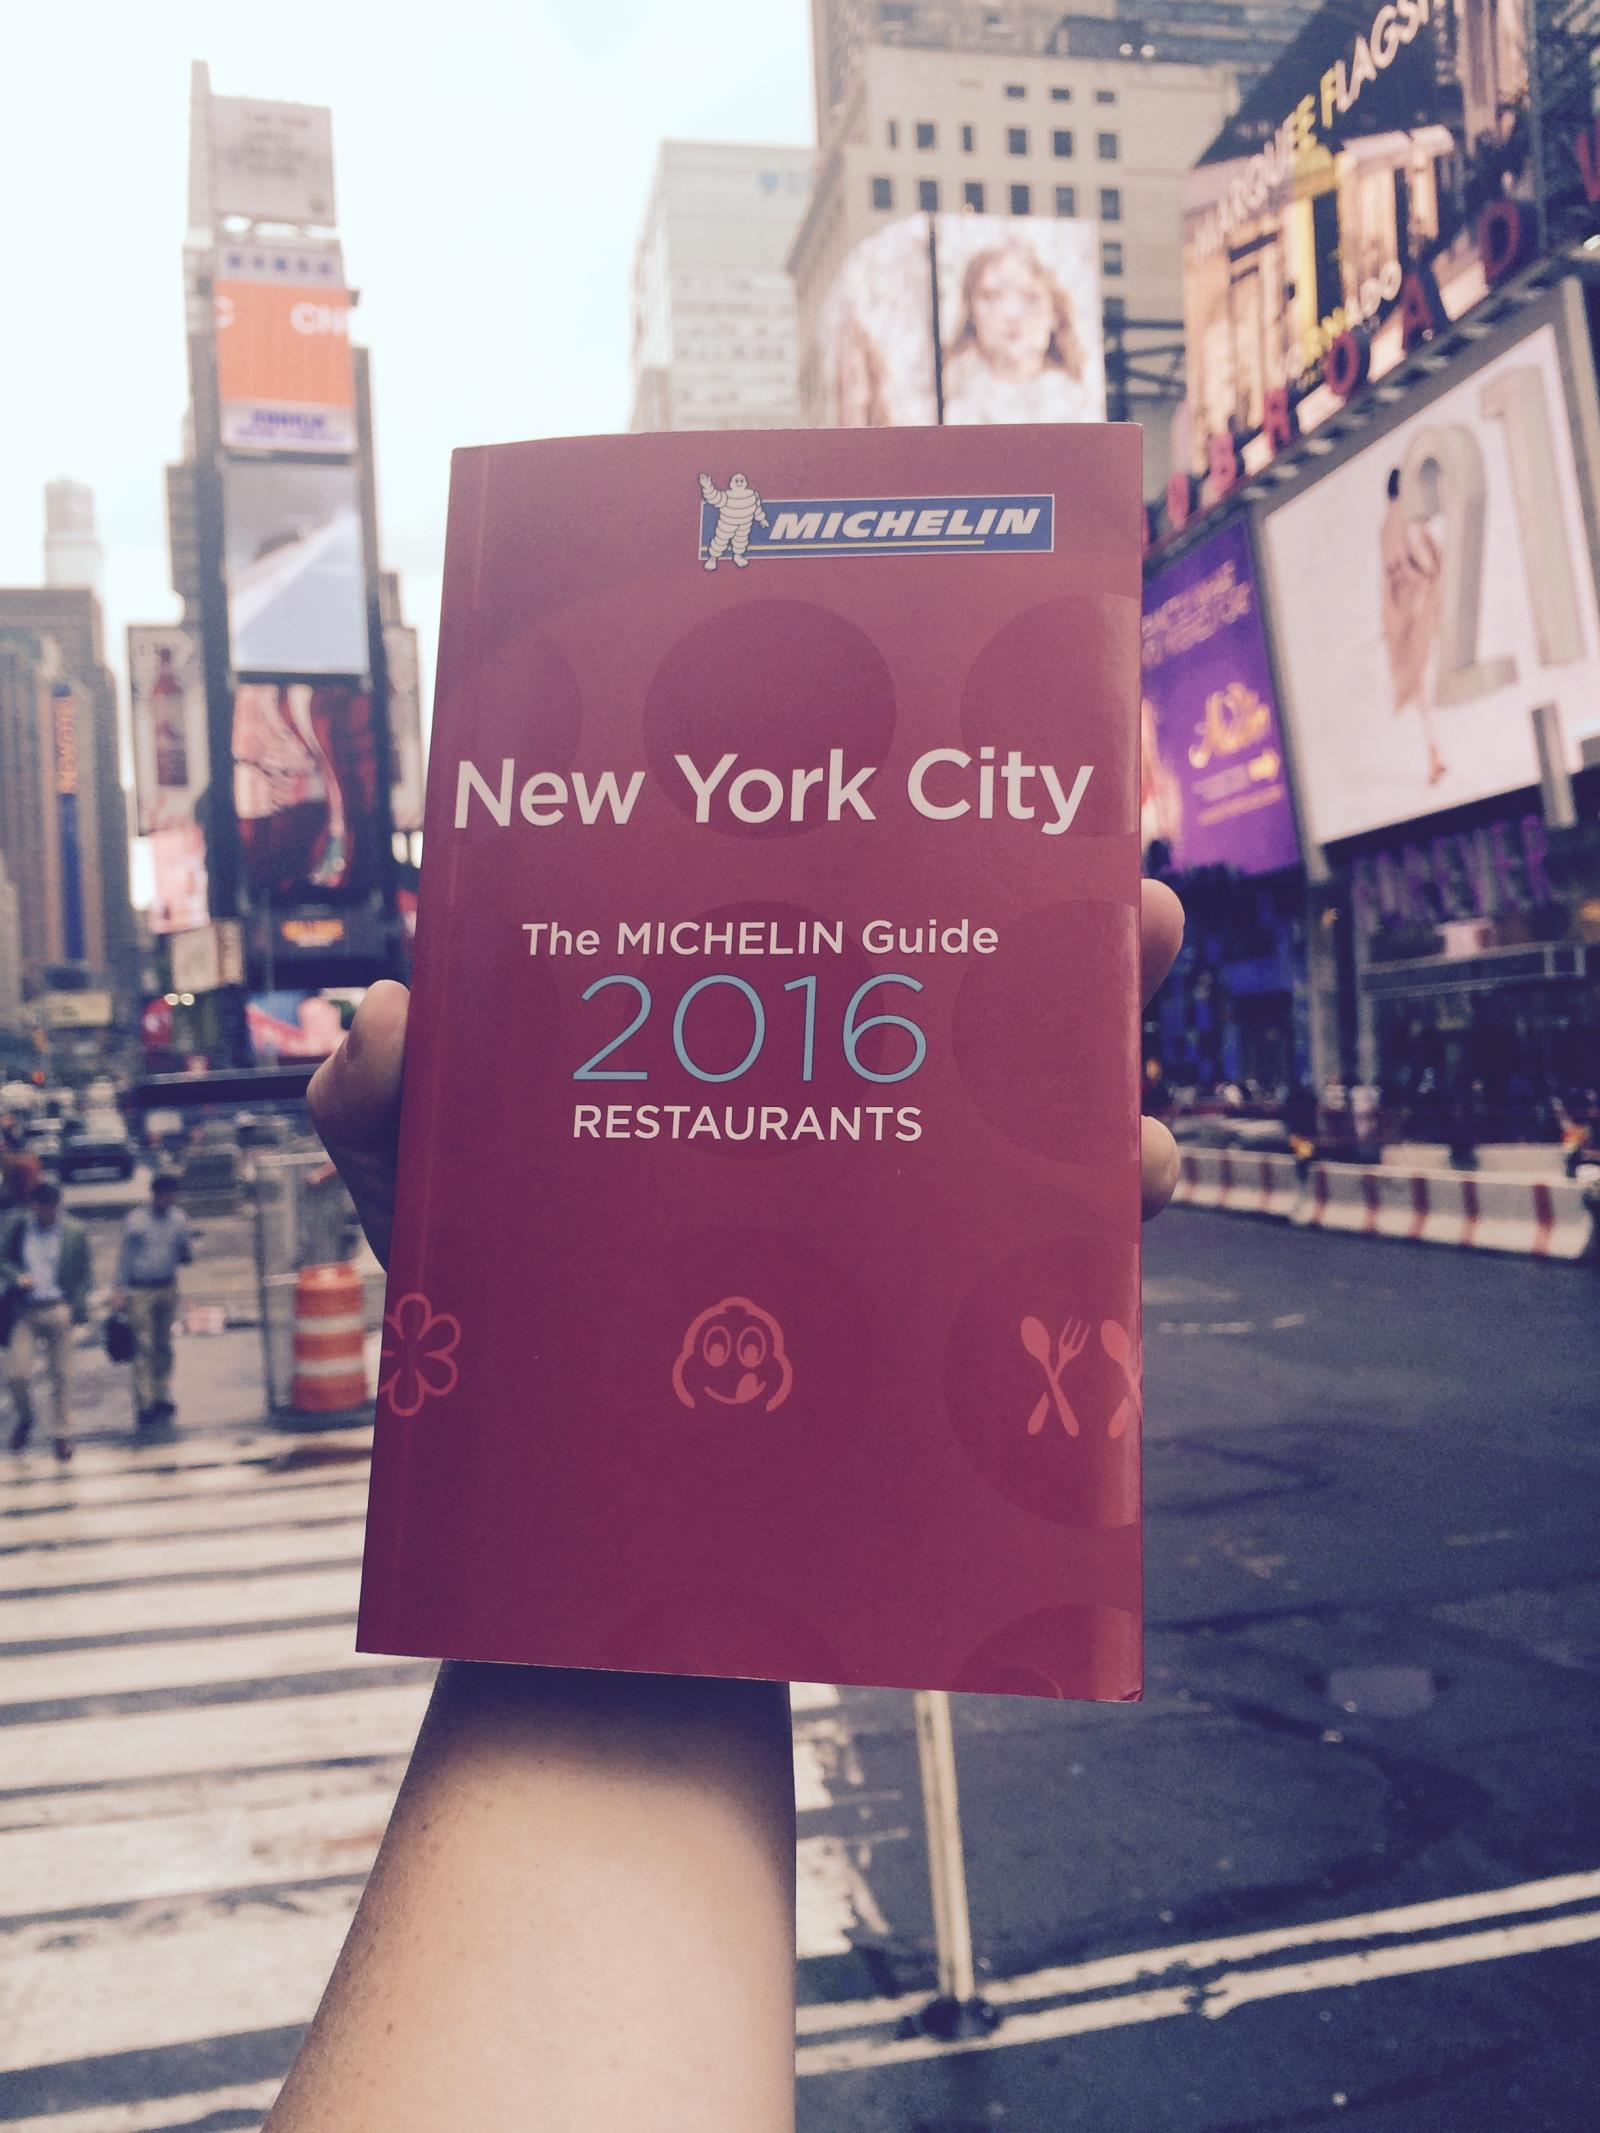 Michelin_NYC_Guide_2016.jpg